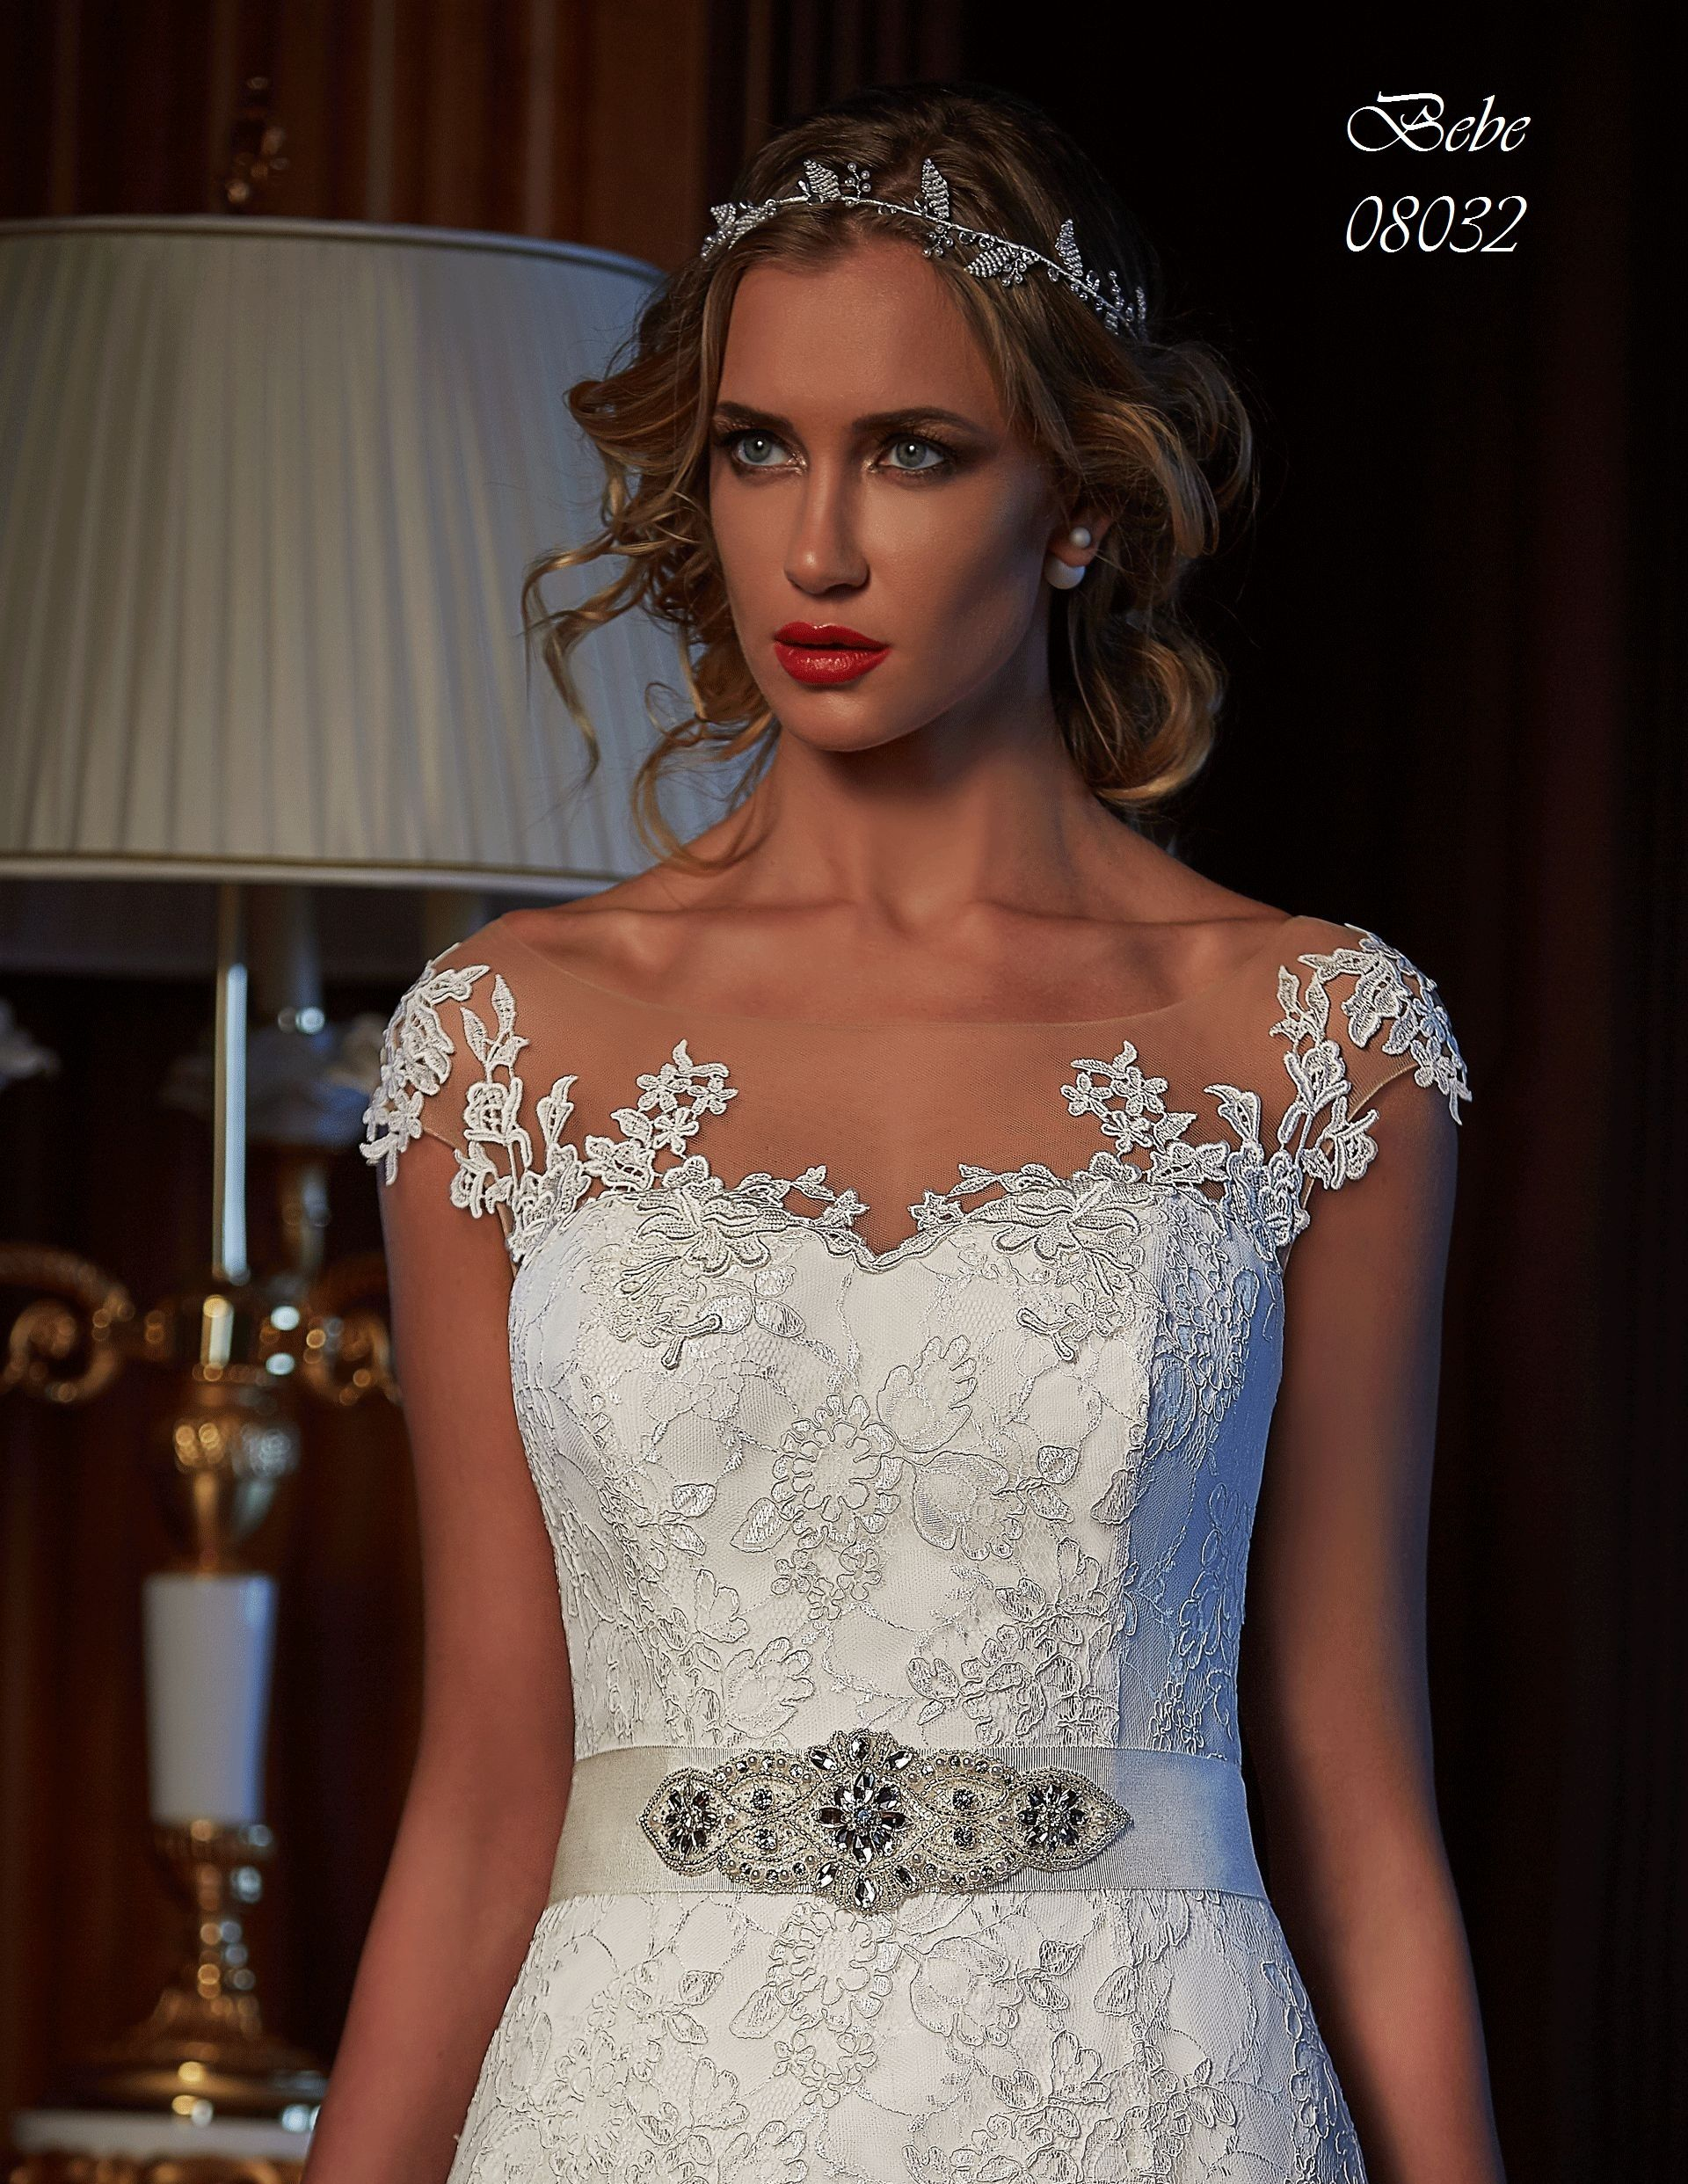 Bebe 08032 Sold Exclusively At Bridal Room In Pretoria Johannesburg Book Your Appointment Today Bridal Wedding Dresses Dream Wedding